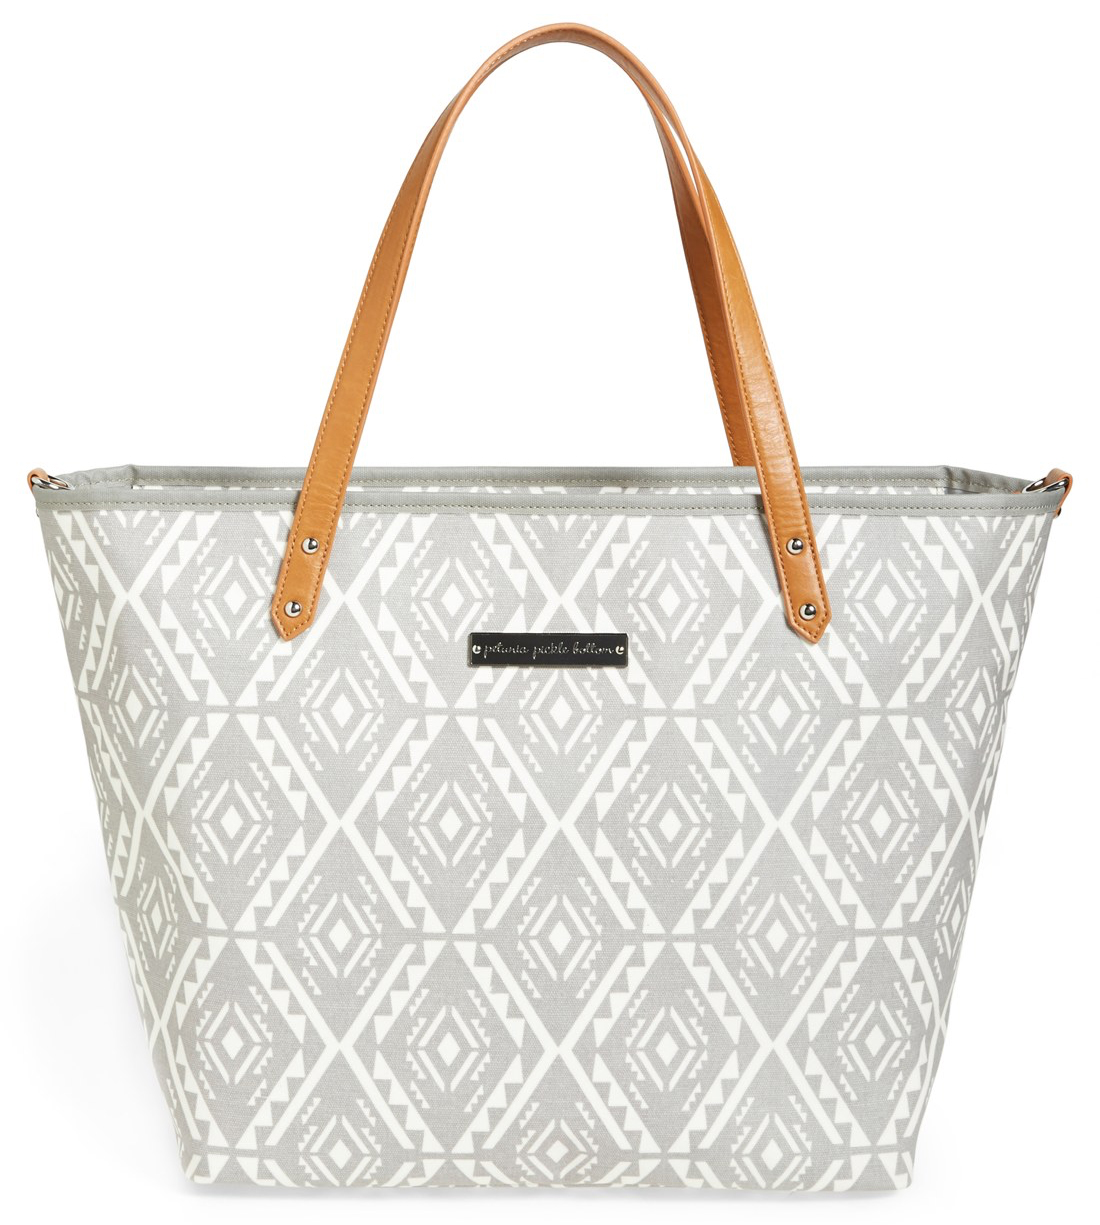 Glazed Canvas Diaper Bag from Nordstrom